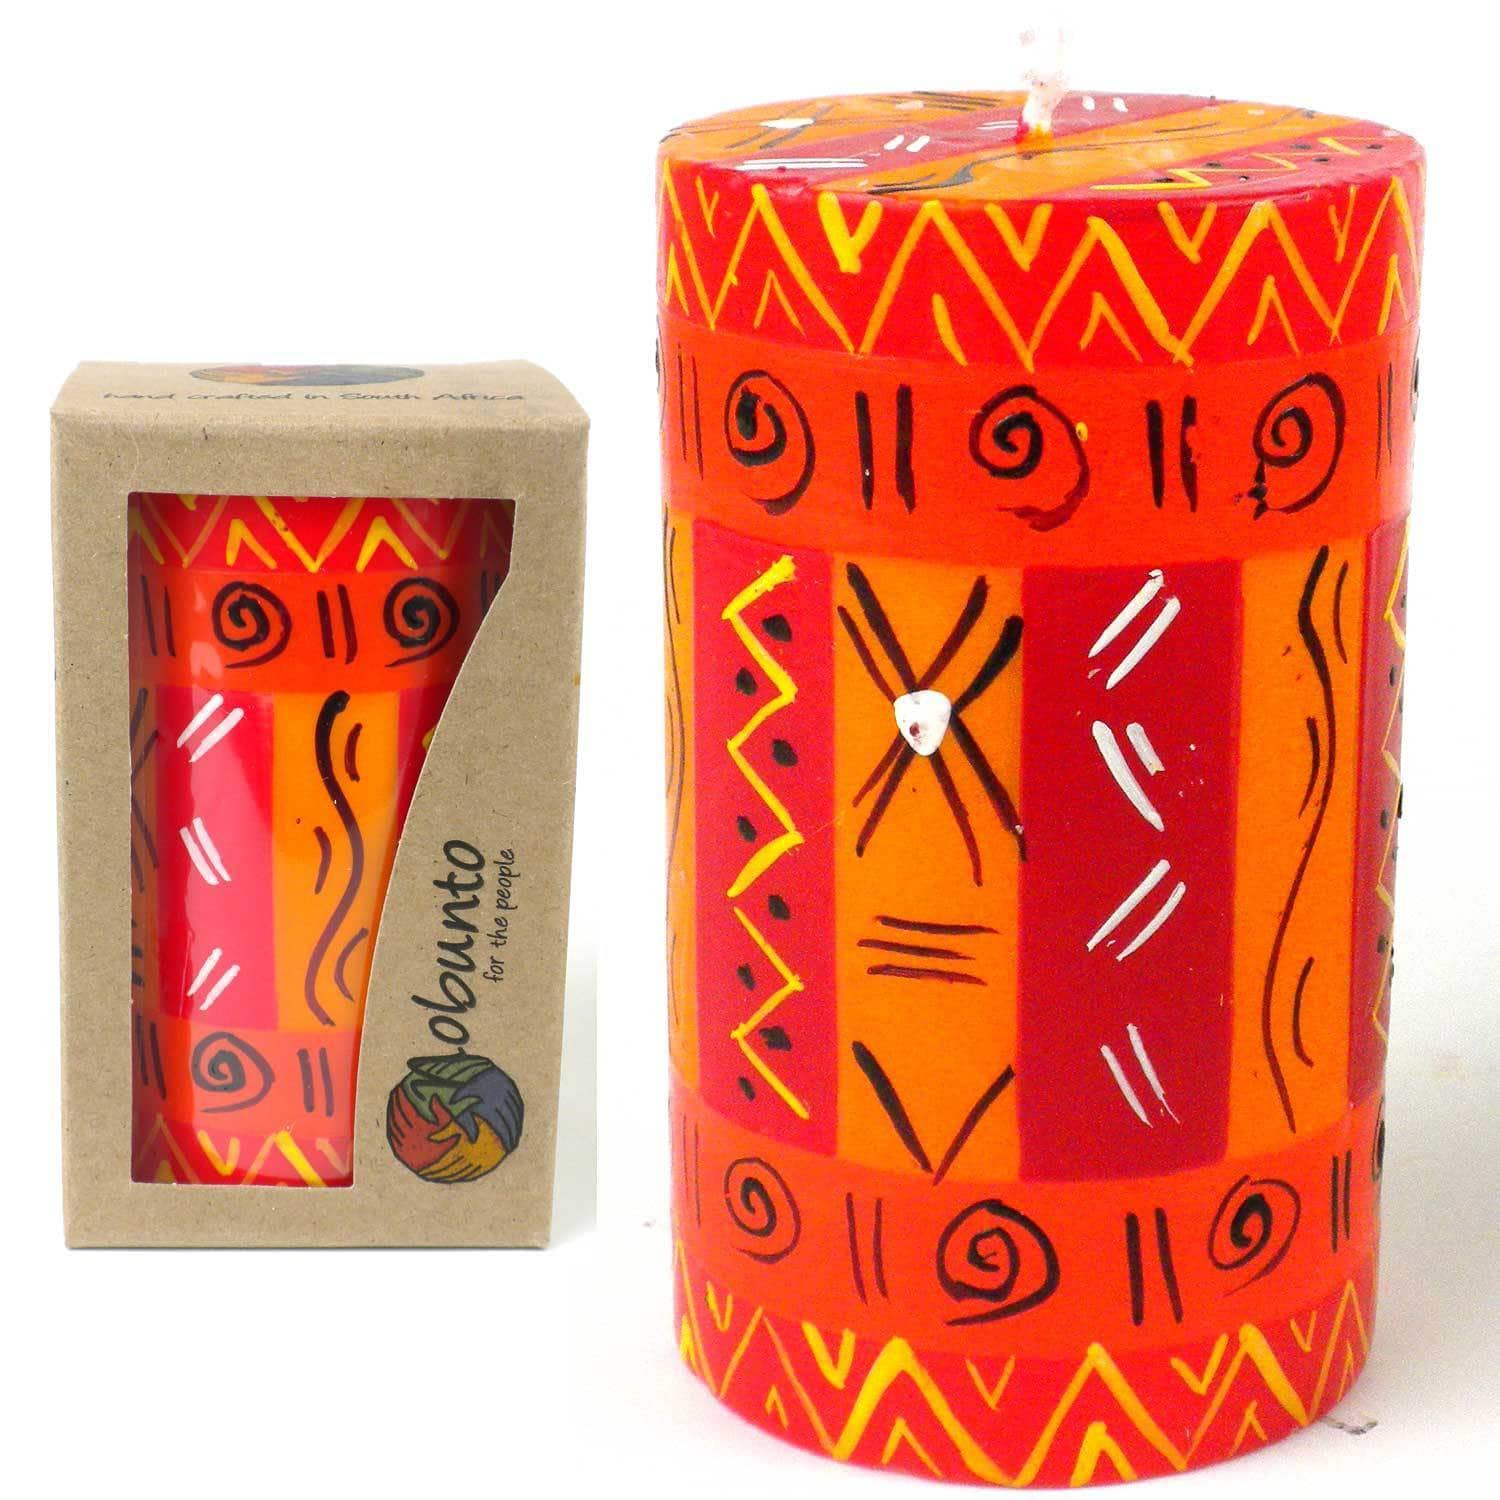 Global Crafts Single Boxed Handmade Zahabu Design Pillar Candle (South Africa)